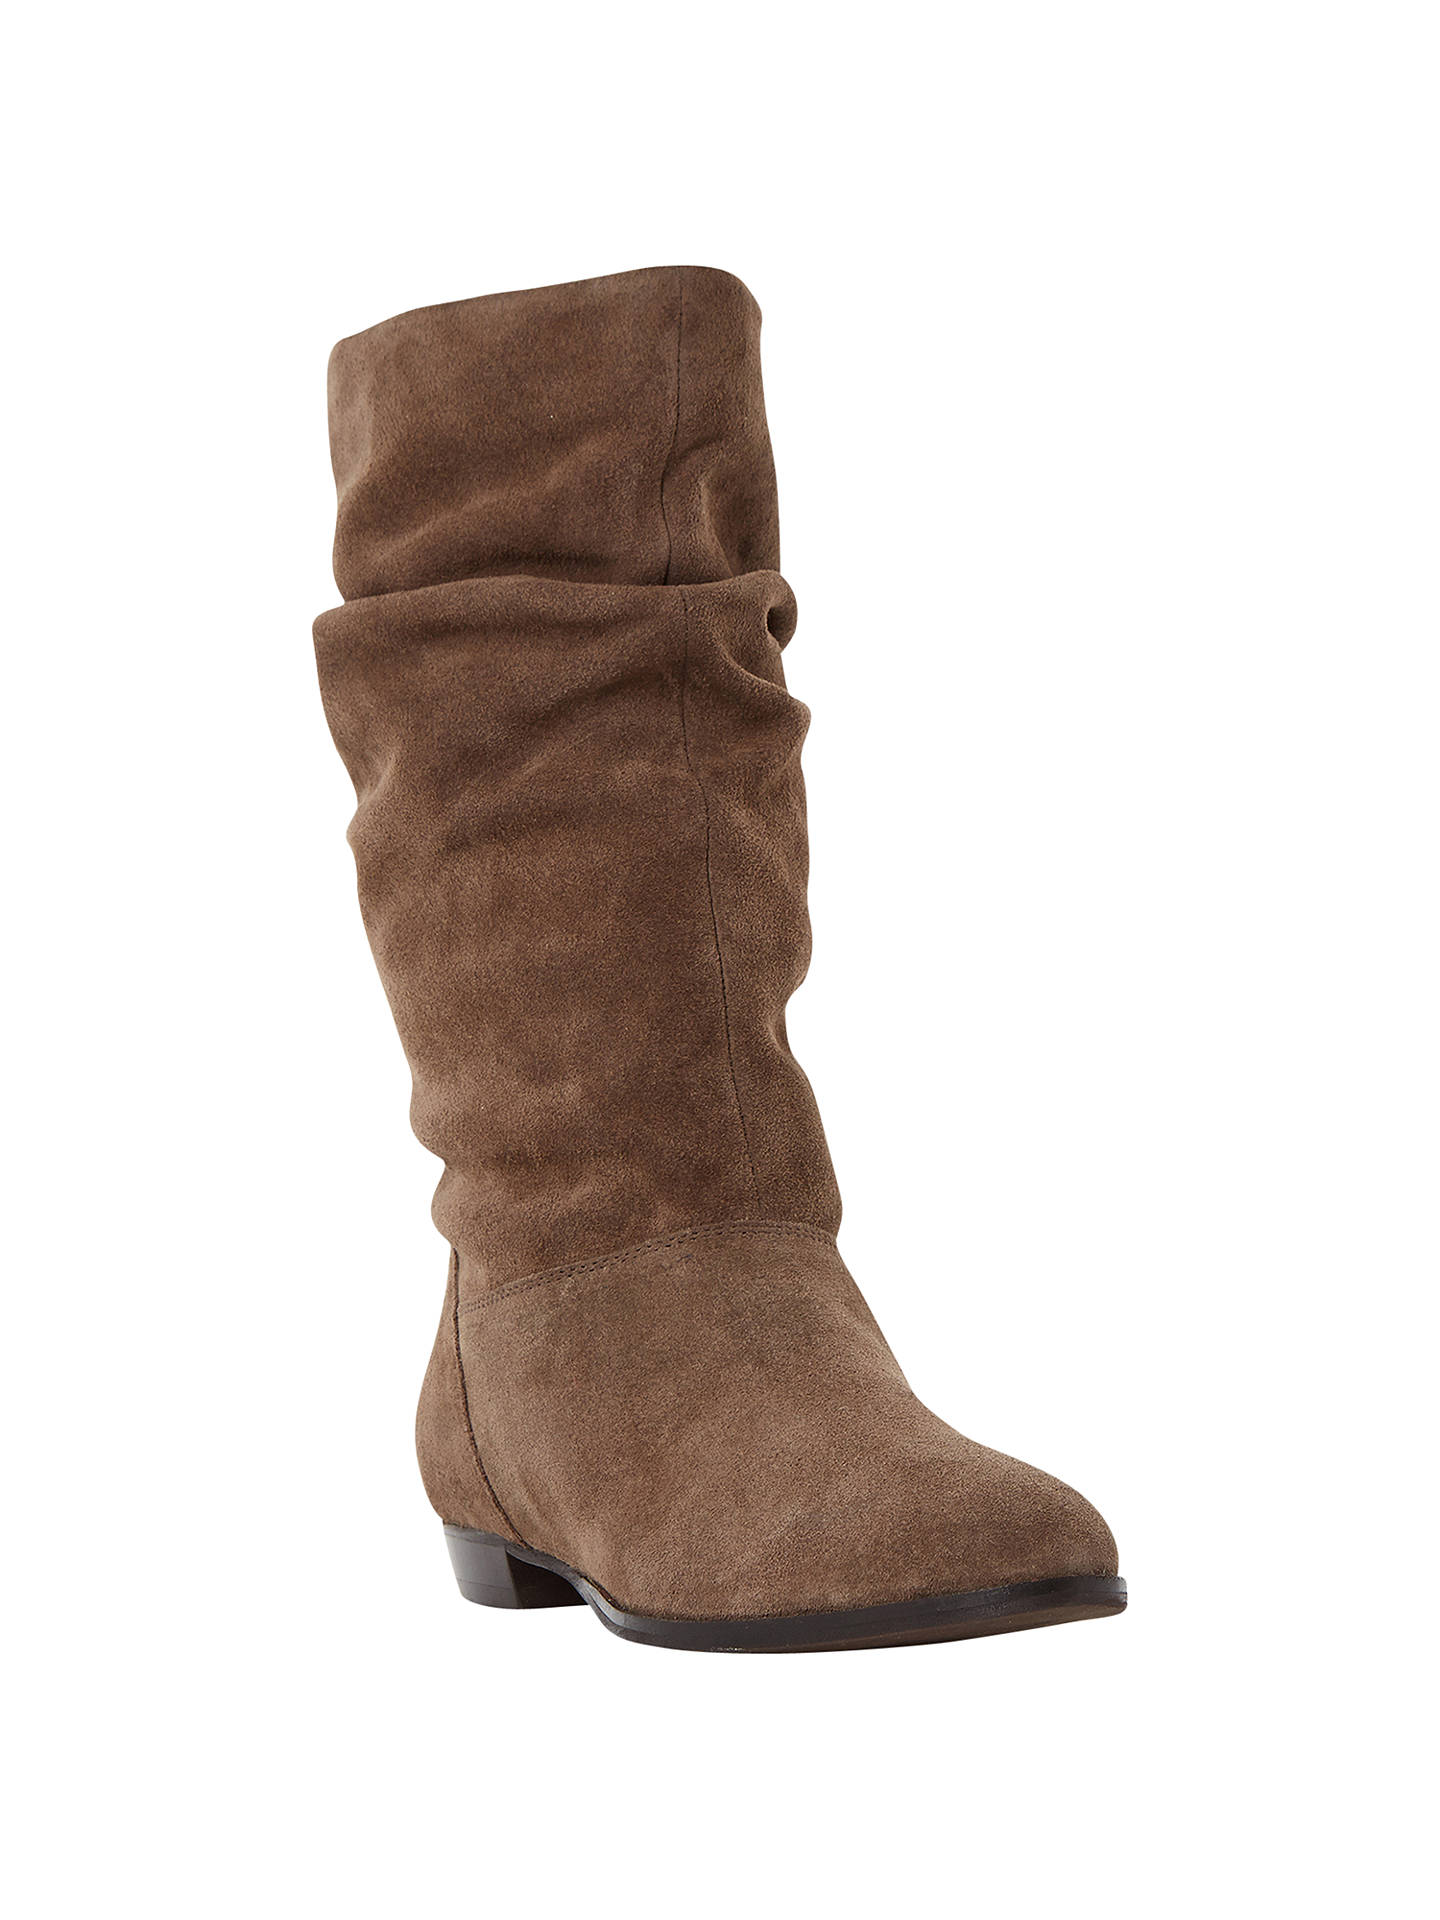 Dune Relissa Suede Slouch Calf Boot Taupe At John Lewis Partners Flat 2cm Buydune 3 Online